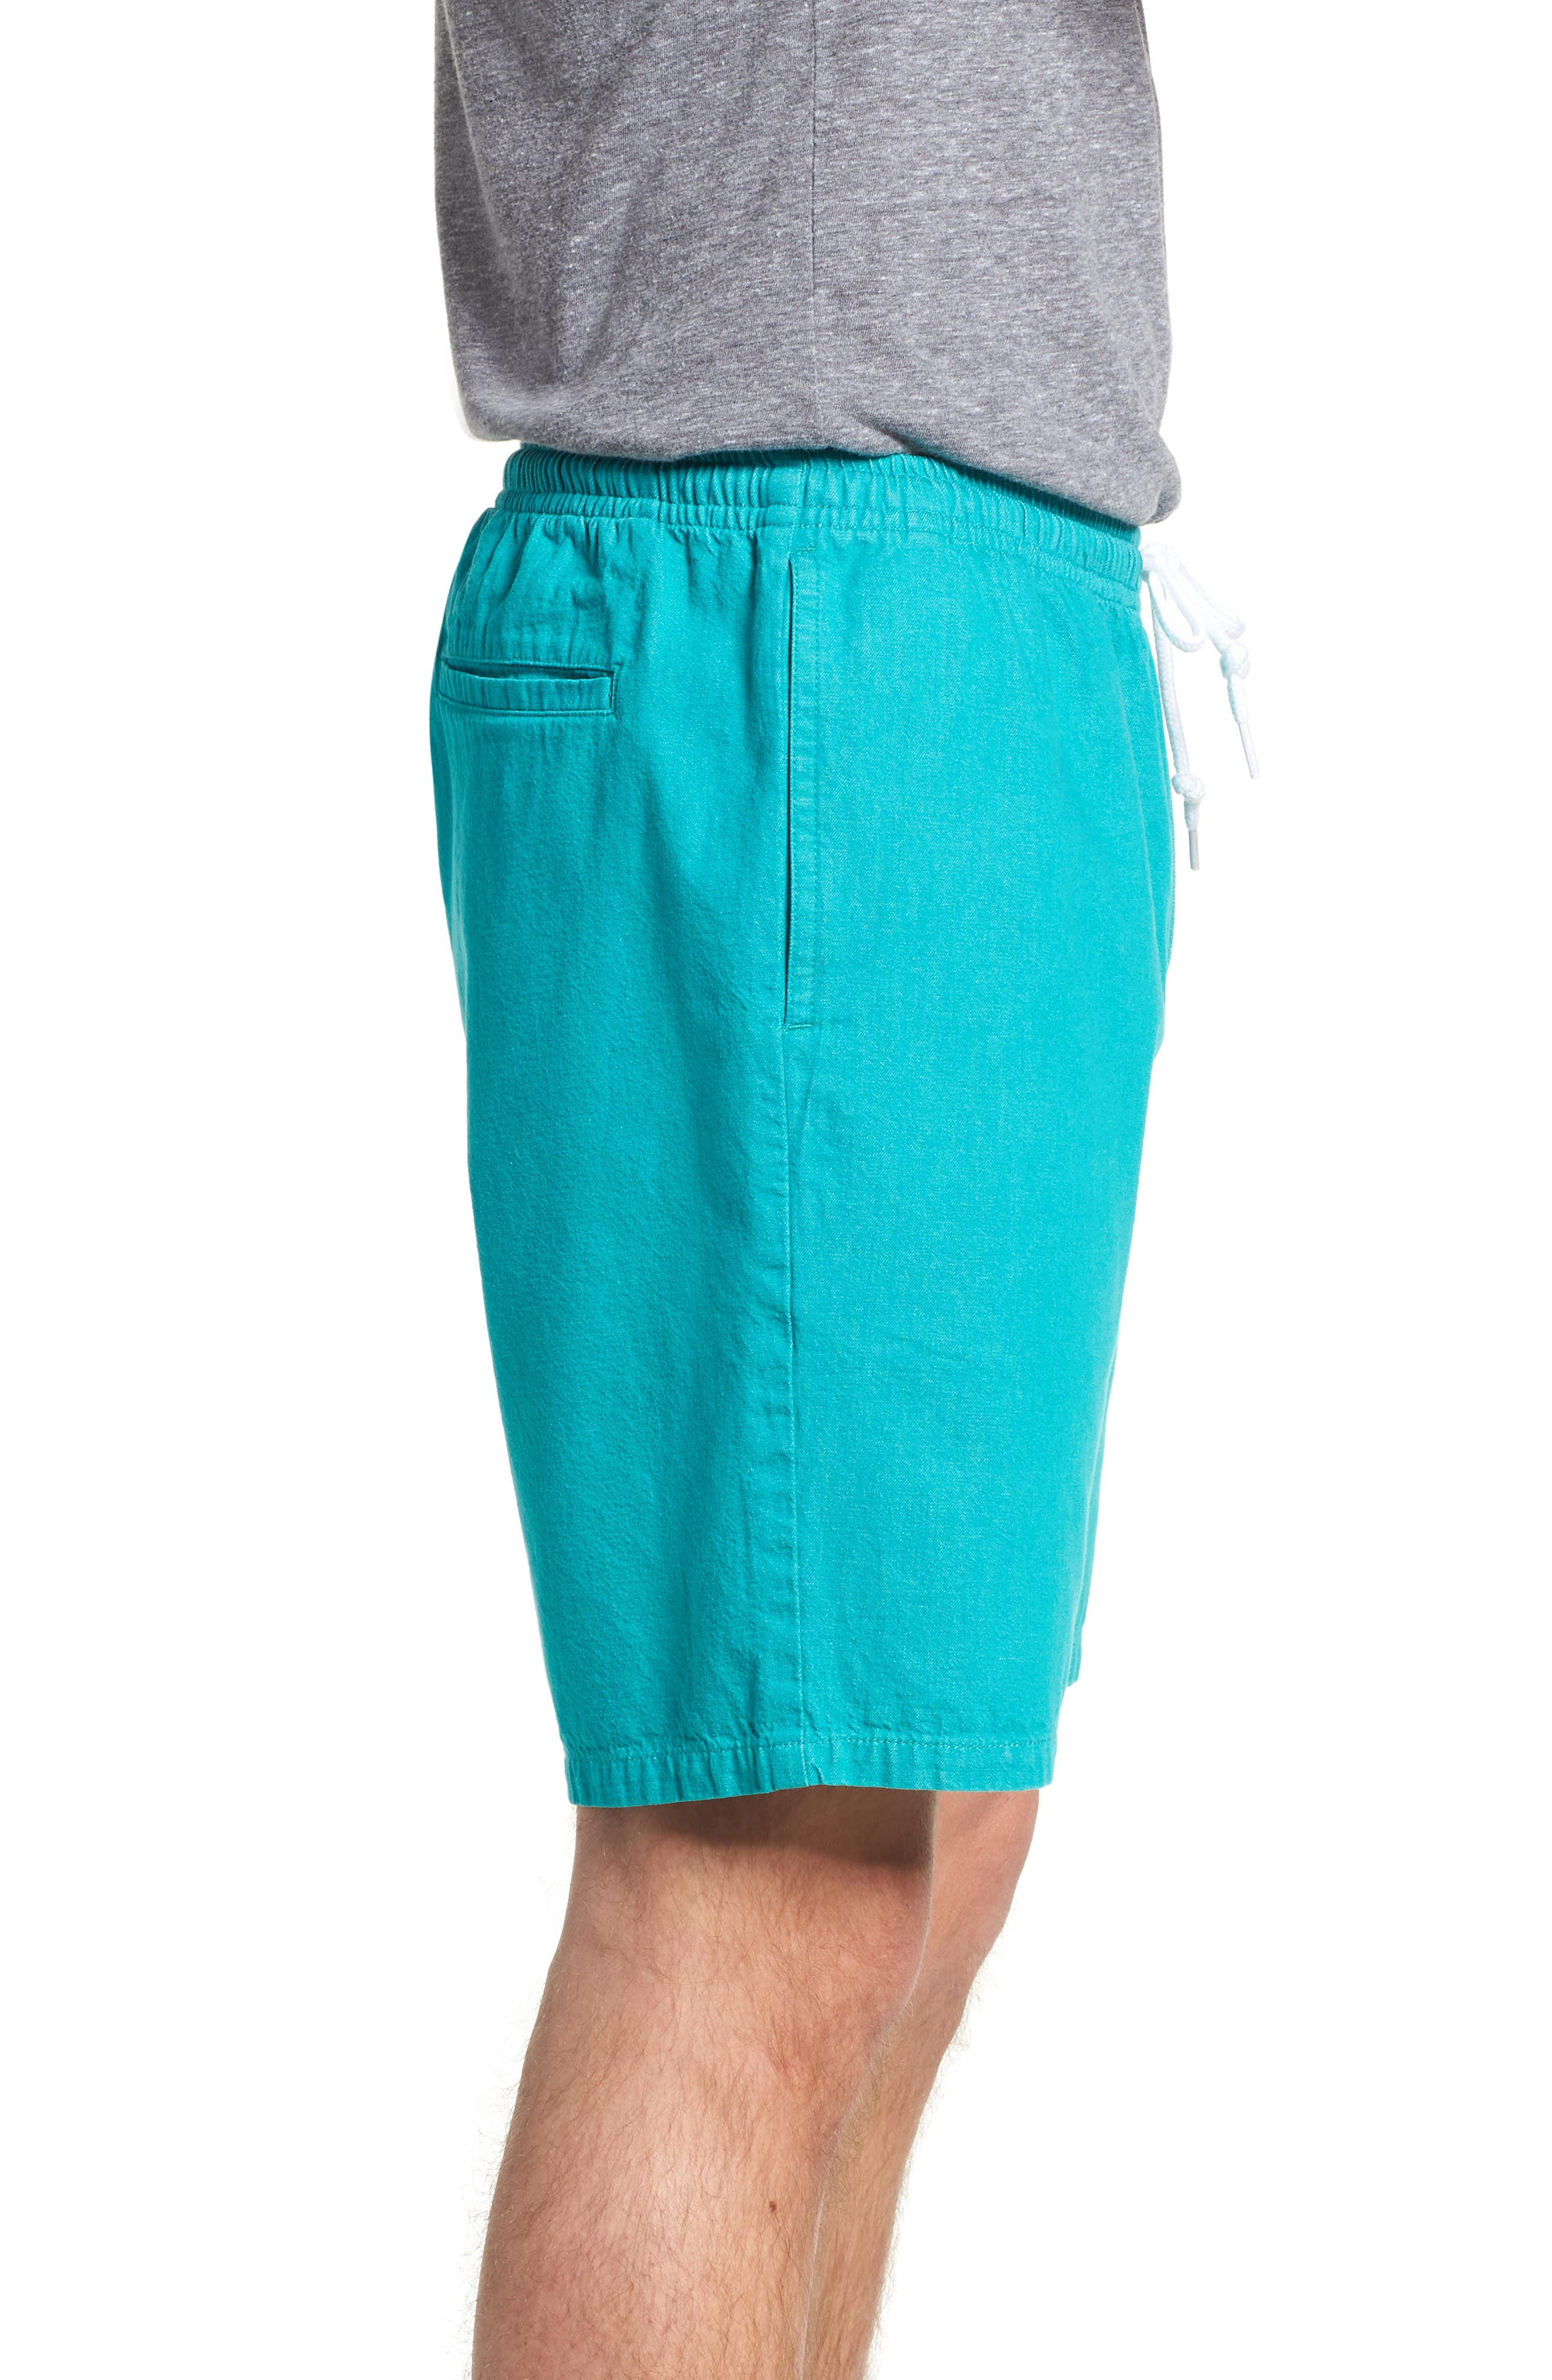 Keble Drawstring Shorts,                             Alternate thumbnail 3, color,                             445